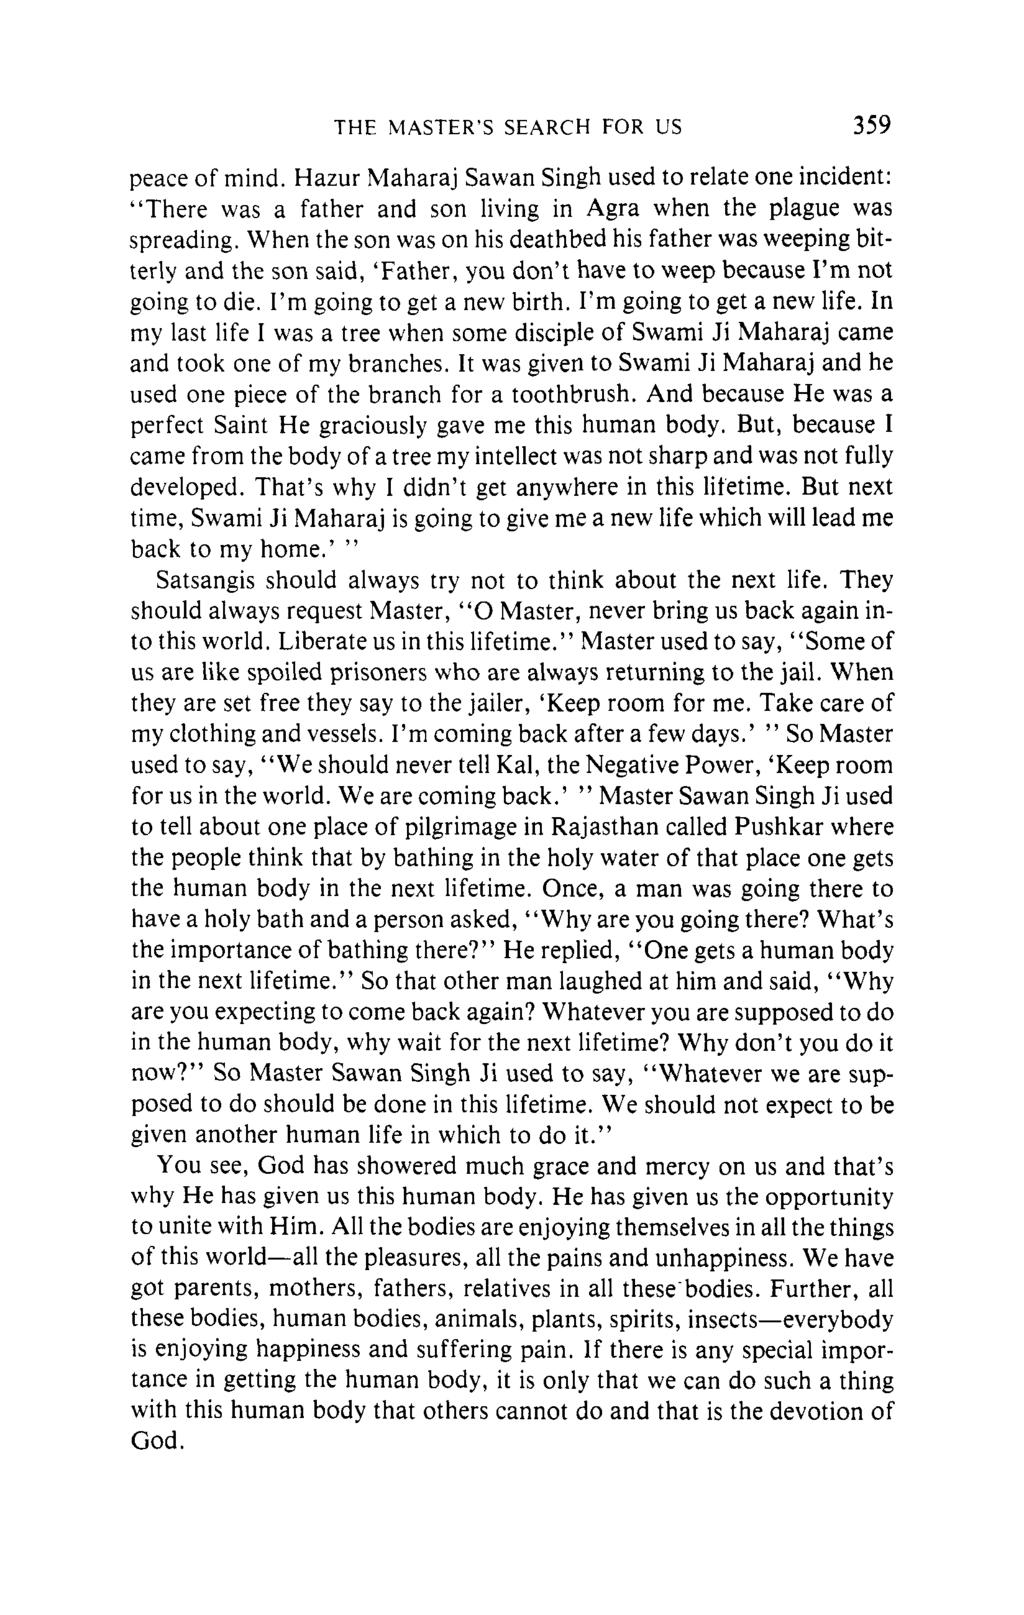 "THE MASTER'S SEARCH FOR US 359 peace of mind. Hazur Maharaj Sawan Singh used to relate one incident: ""There was a father and son living in Agra when the plague was spreading."